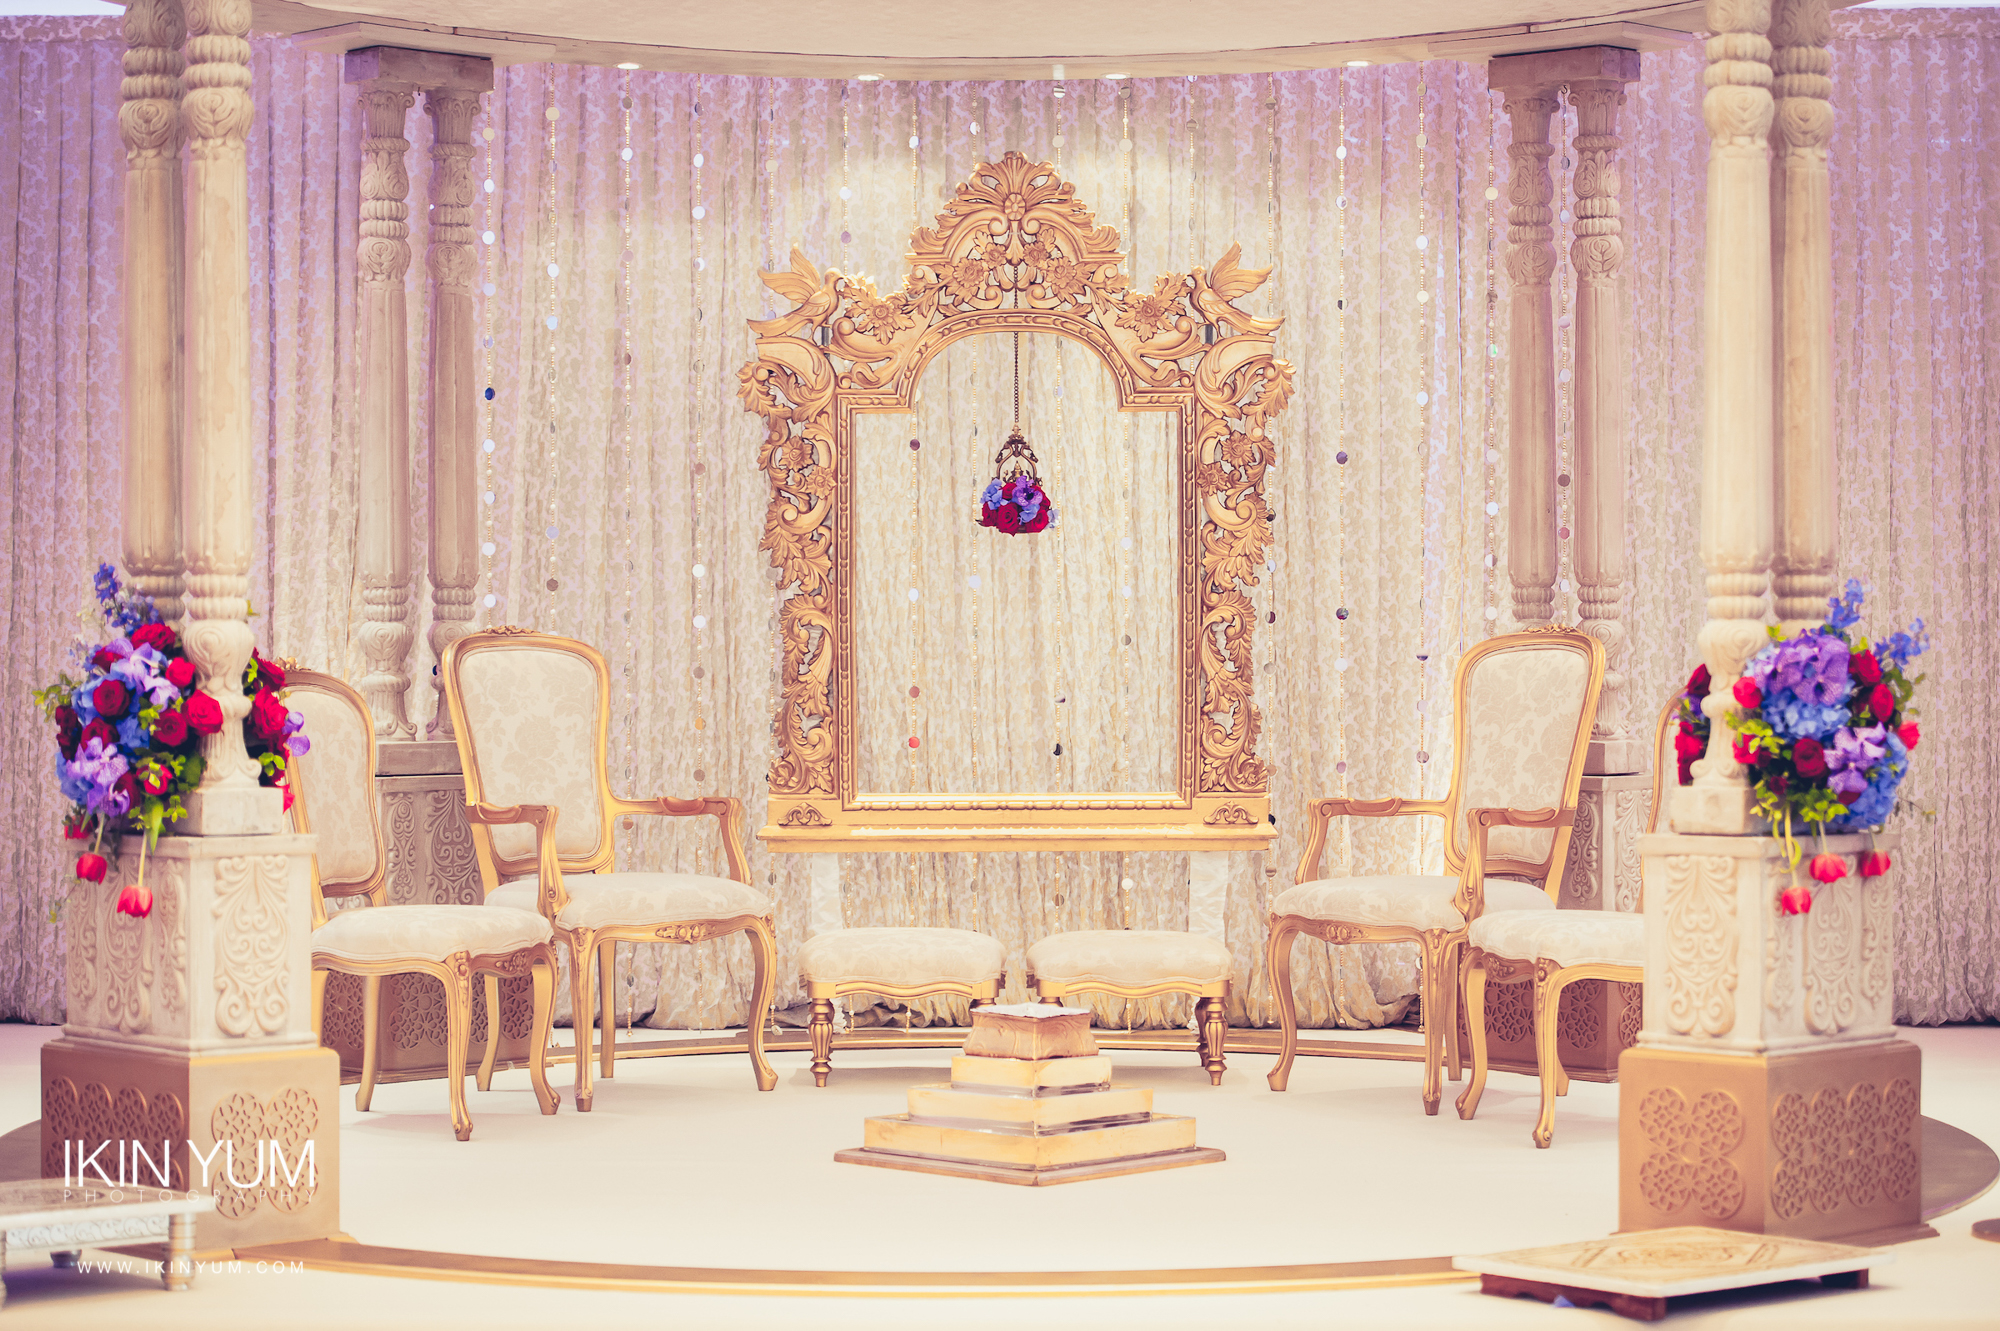 Oshwal Centre Wedding - Ikin Yum Photography-017.jpg